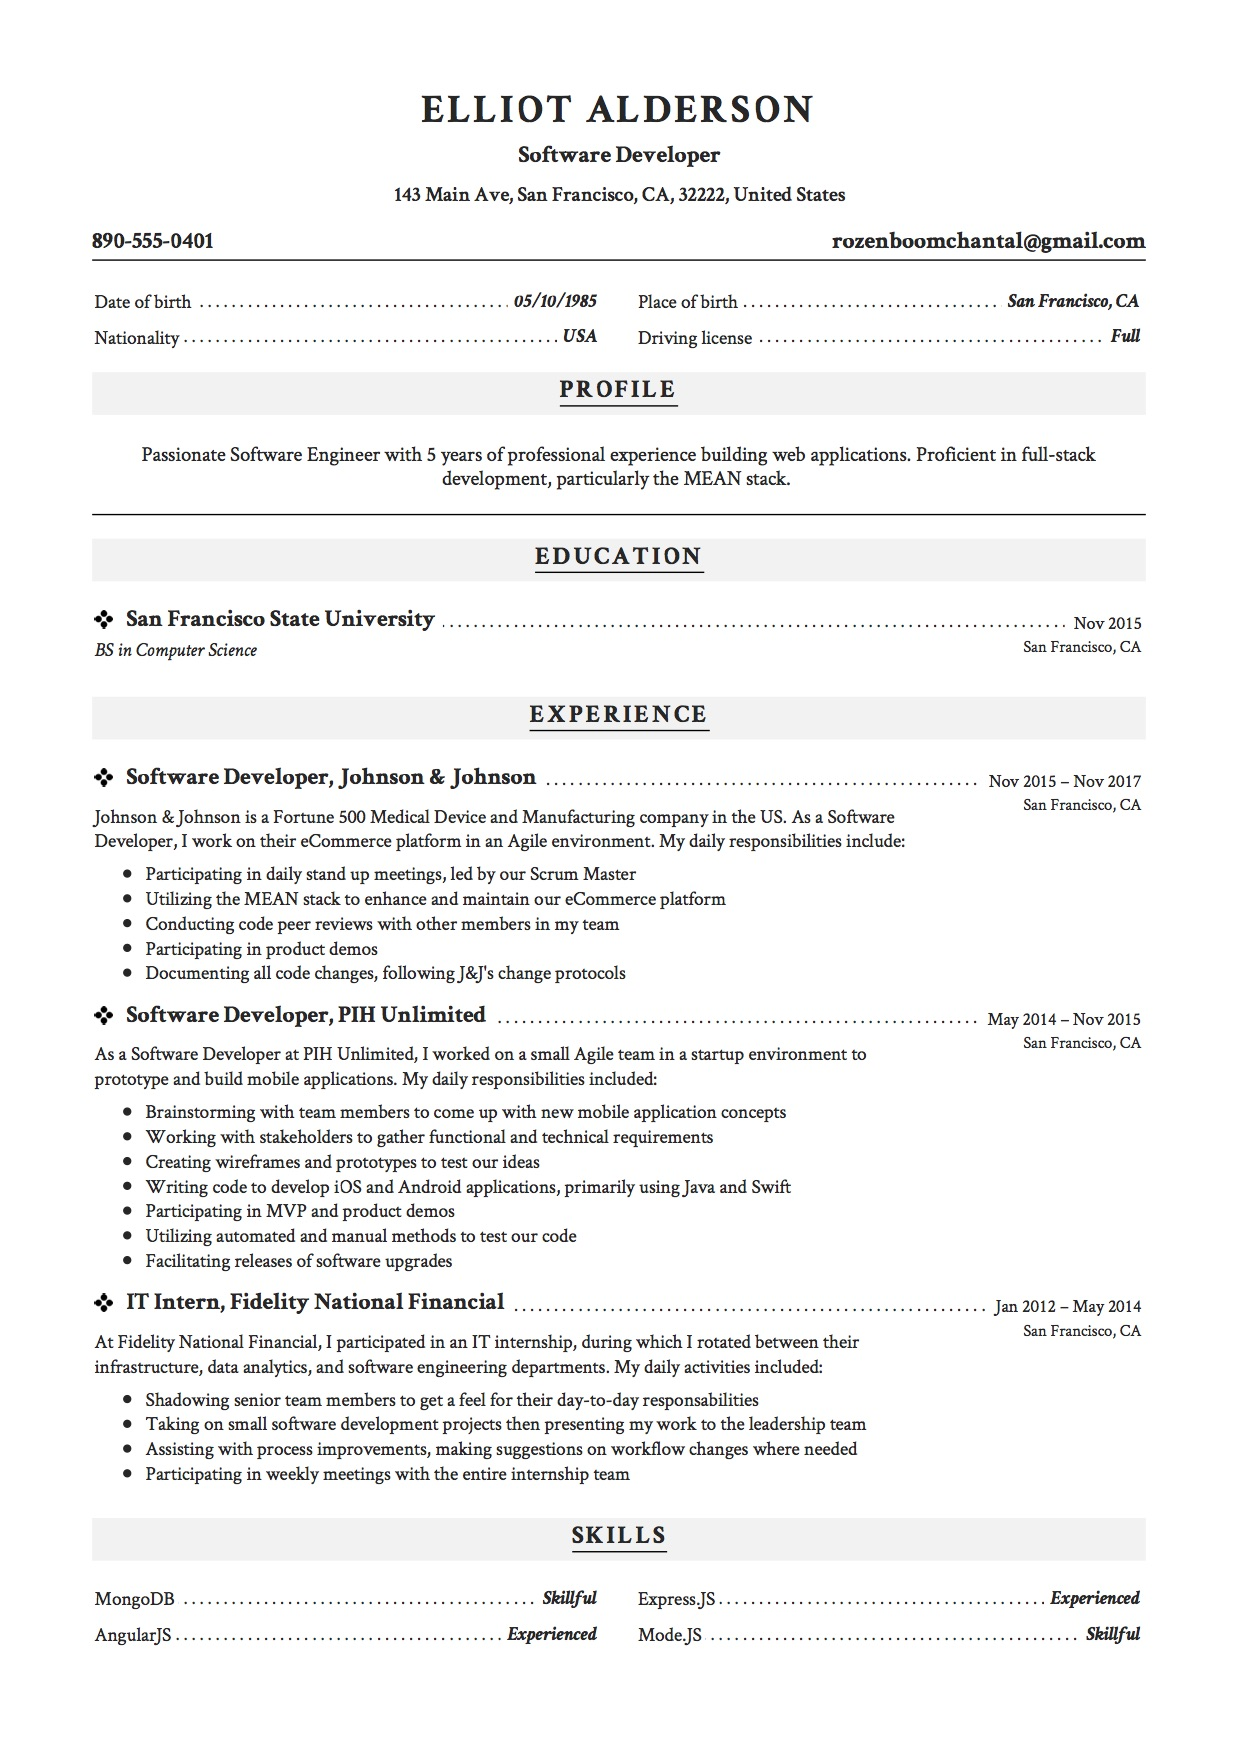 elliot alderson resume sample software developer - Angularjs Developer Resume